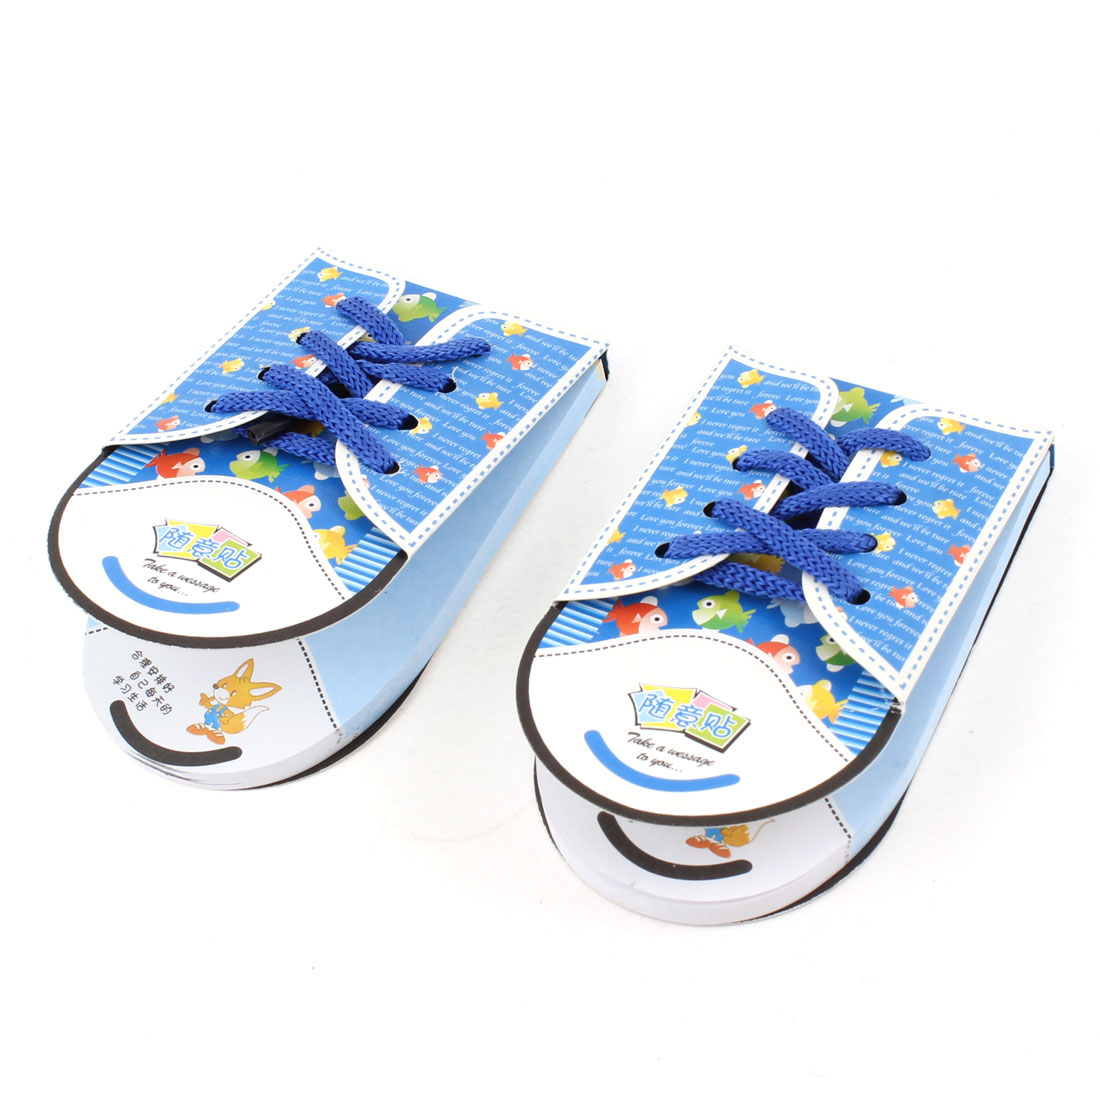 2pcs Blue Shoe Shoelace Design Adhesive Notepad Memo Paper